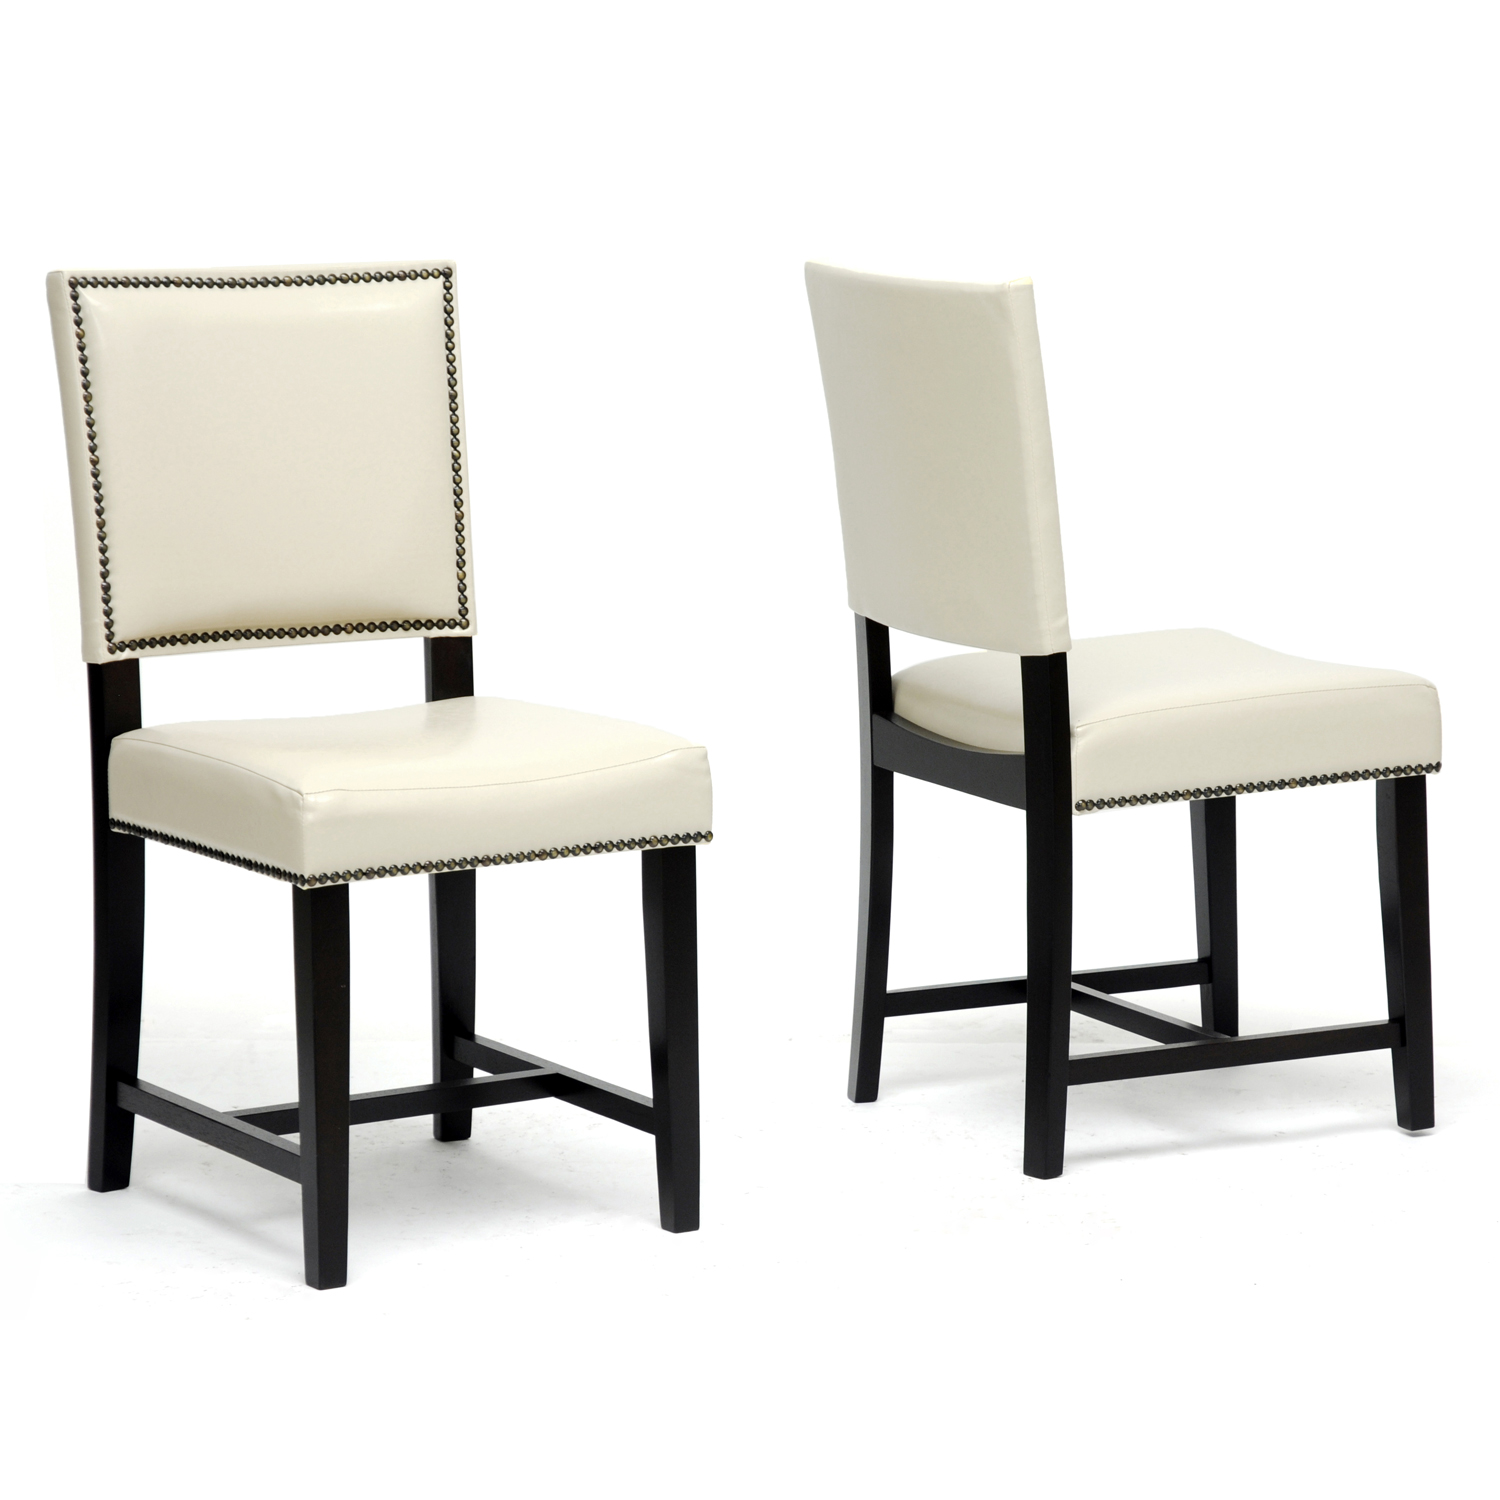 Nailhead dining chair excellent dining room upholstered for Upholstered dining chairs